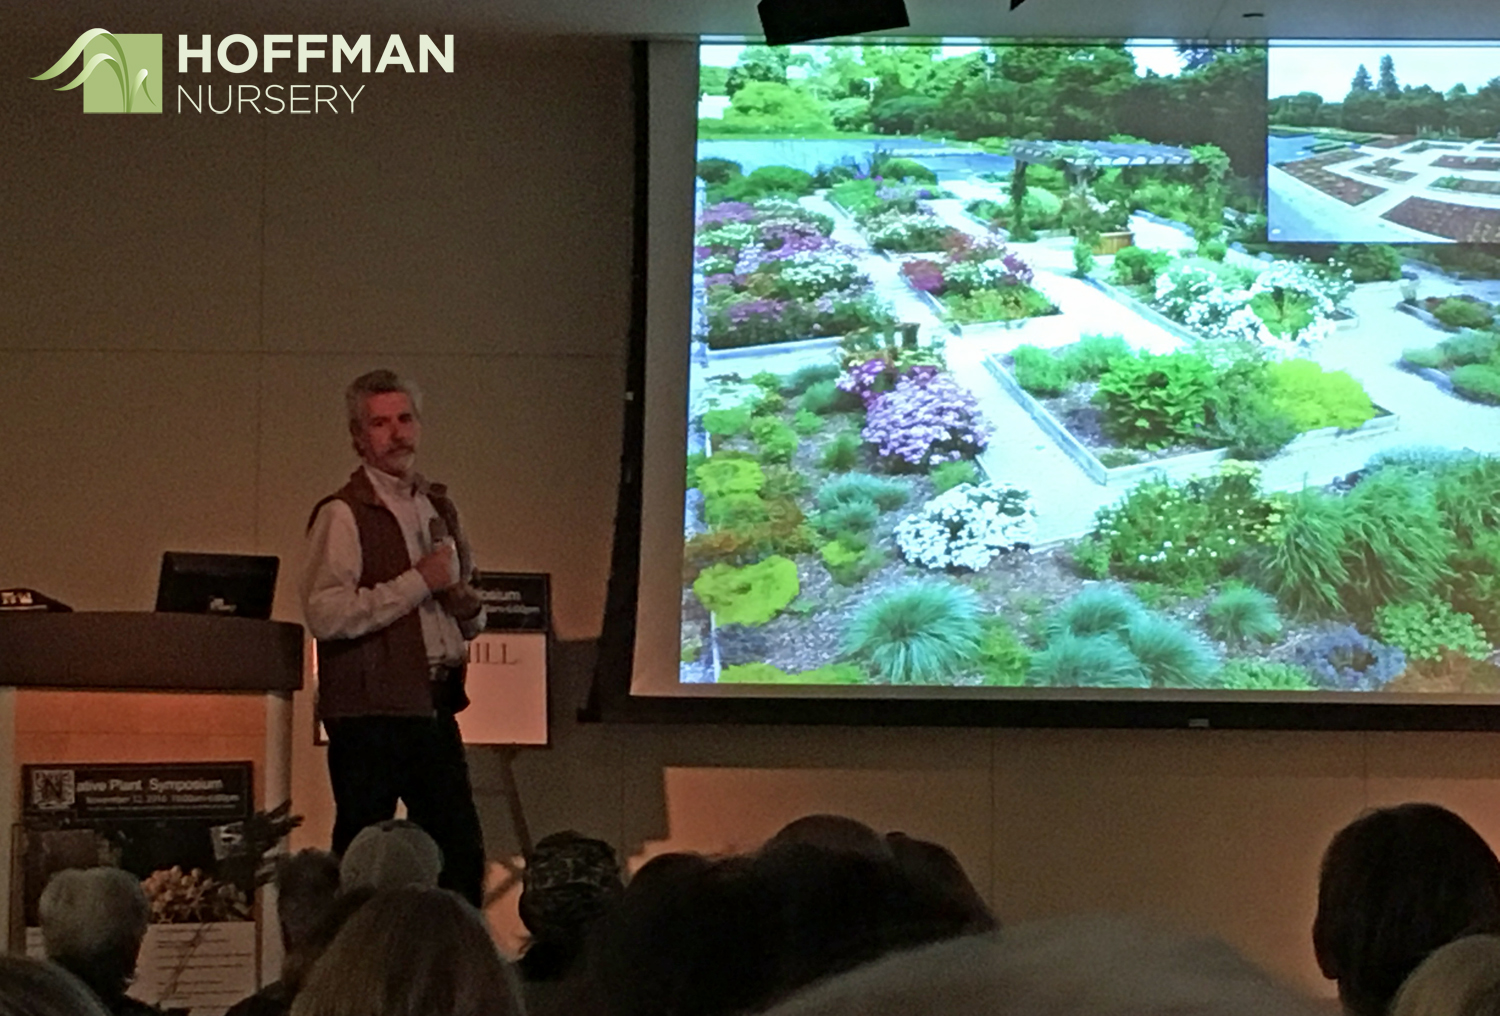 Steve Castorani of North Creek Nurseries started his talk on perennials for pollinators with a description of North Creek's trial and demonstration gardens.